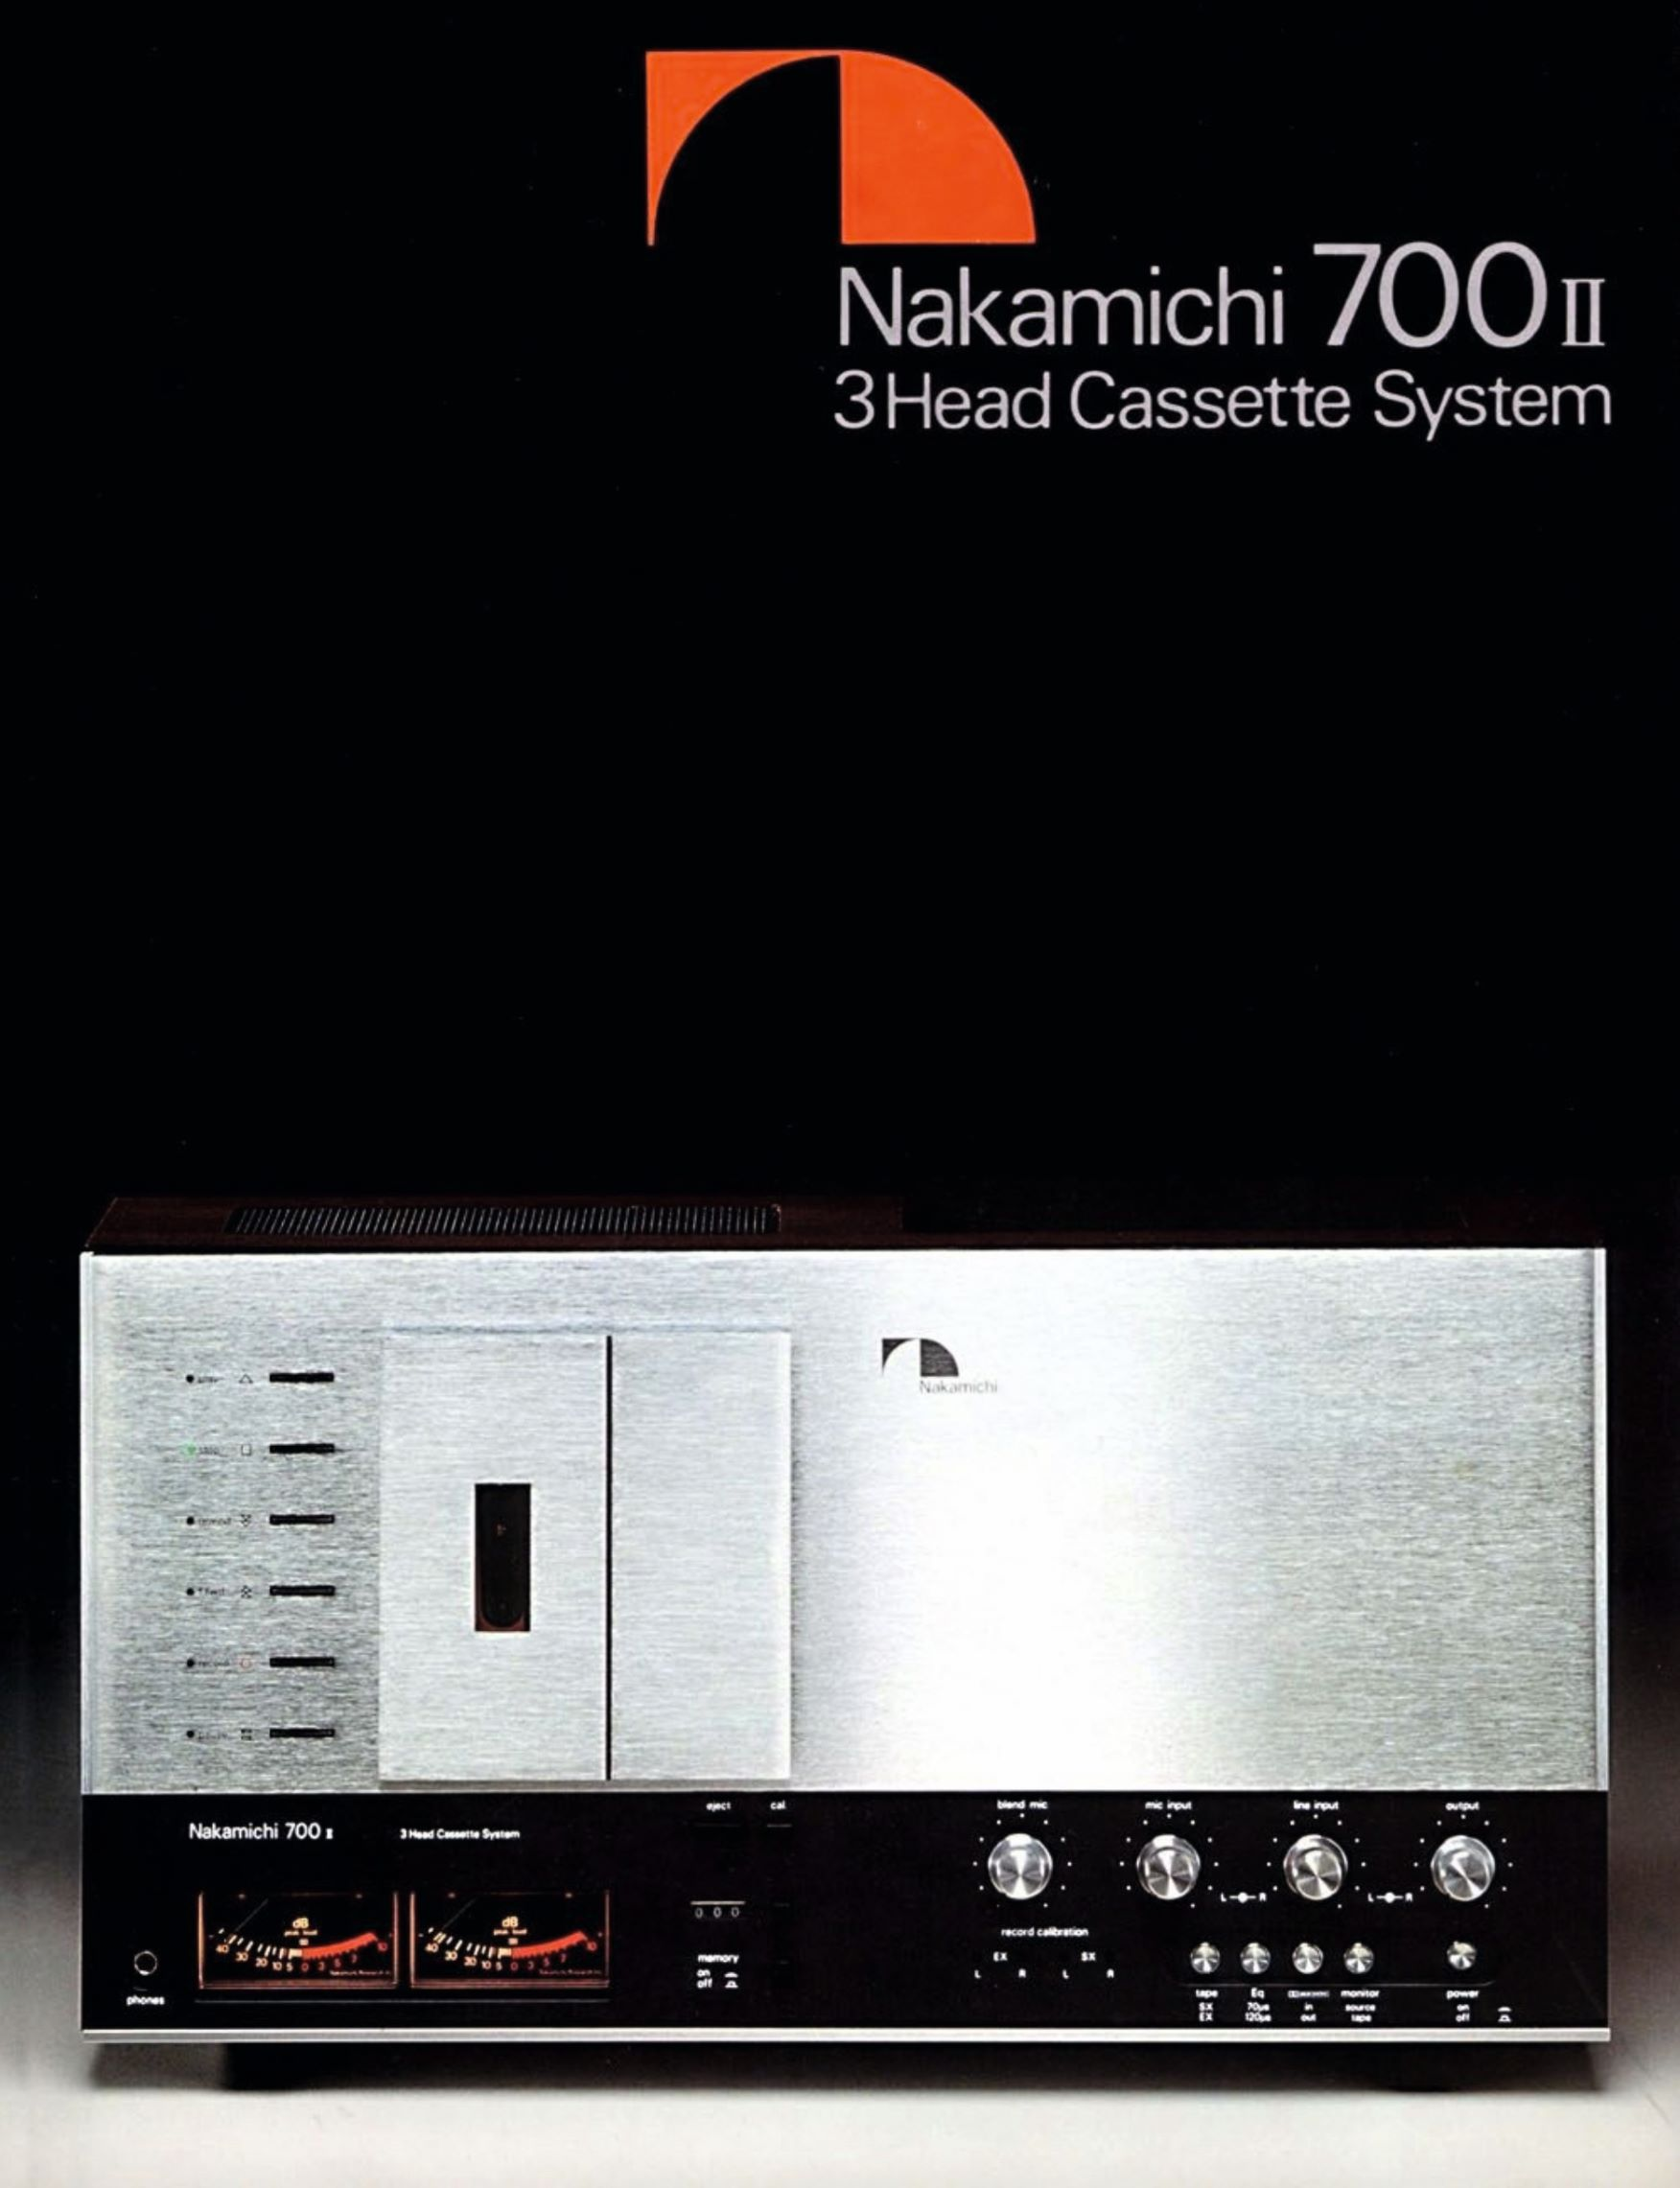 Promotional brochure for the 700ii three-head cassette system, Nakamichi, 1977